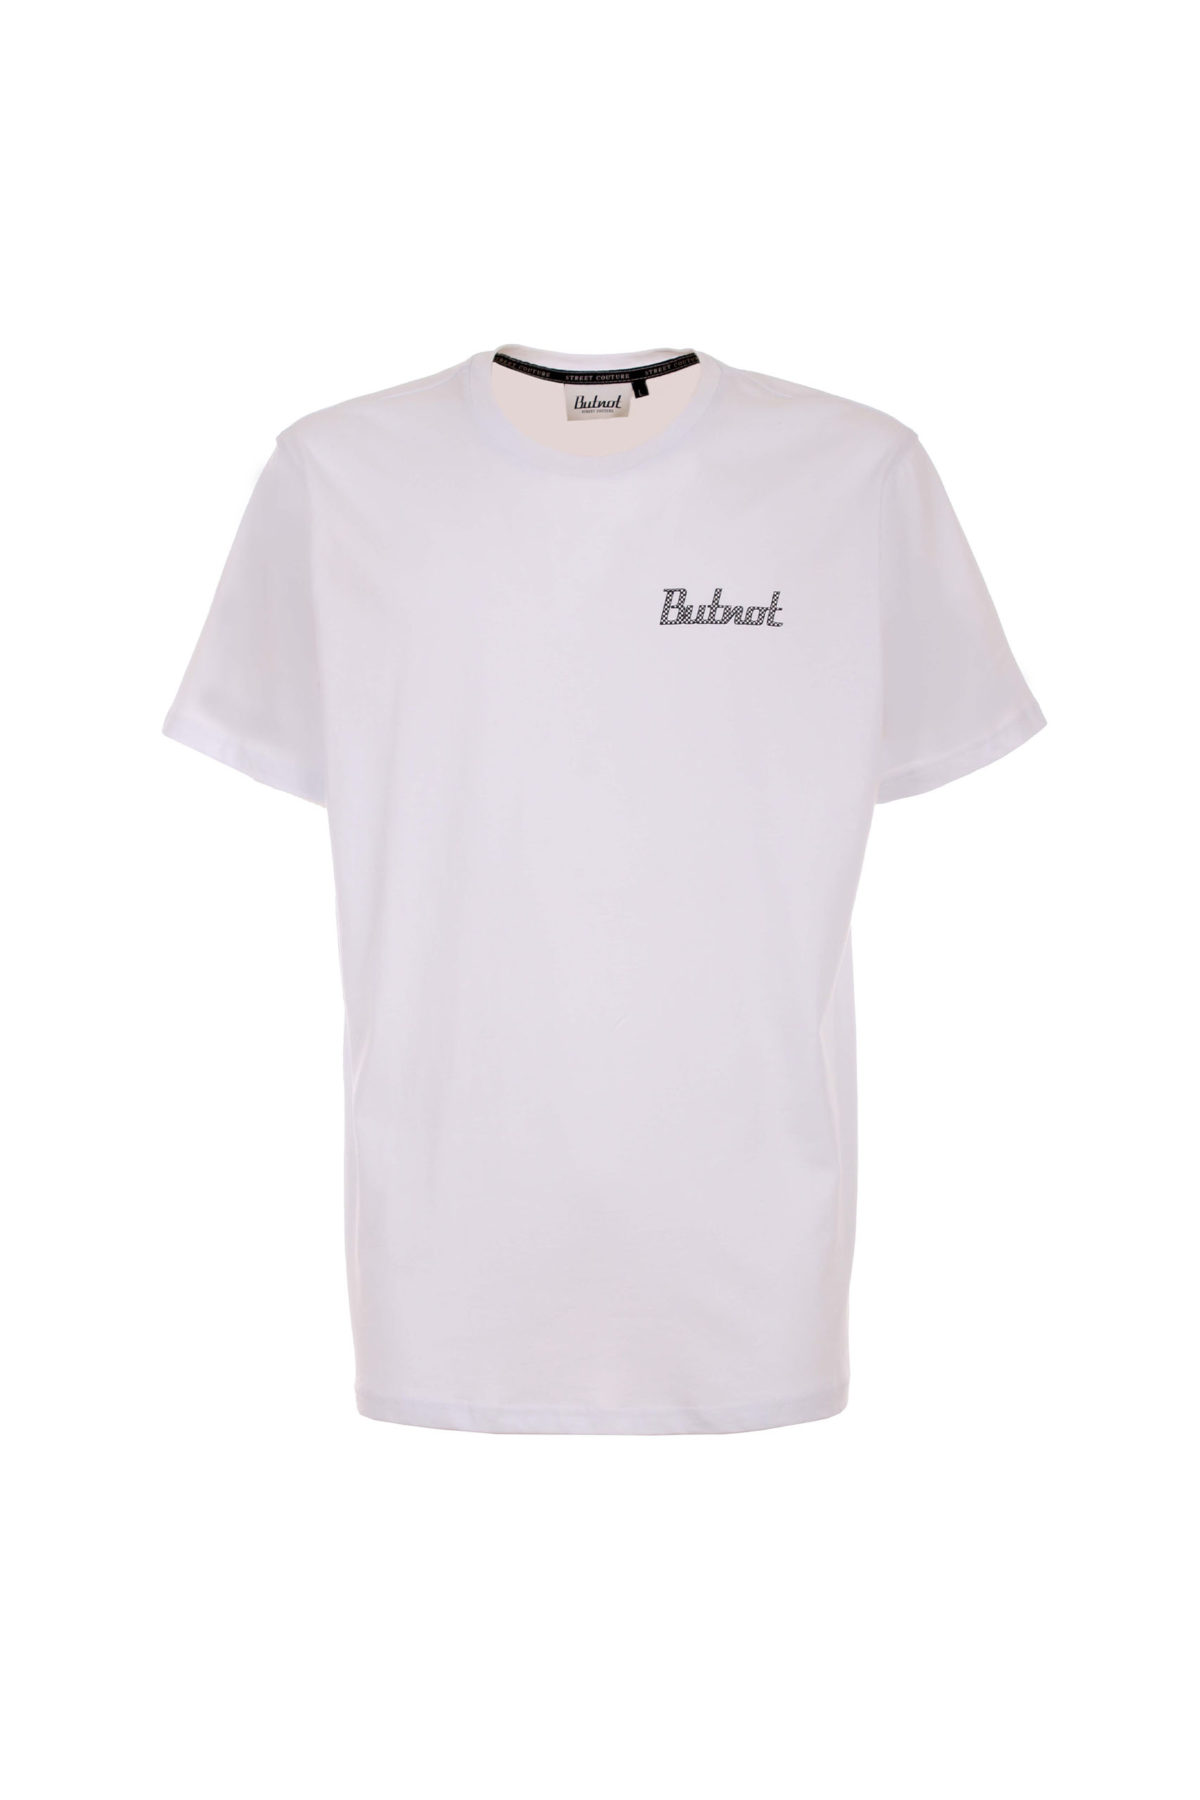 T-SHIRT BUTNOT SCACCHI